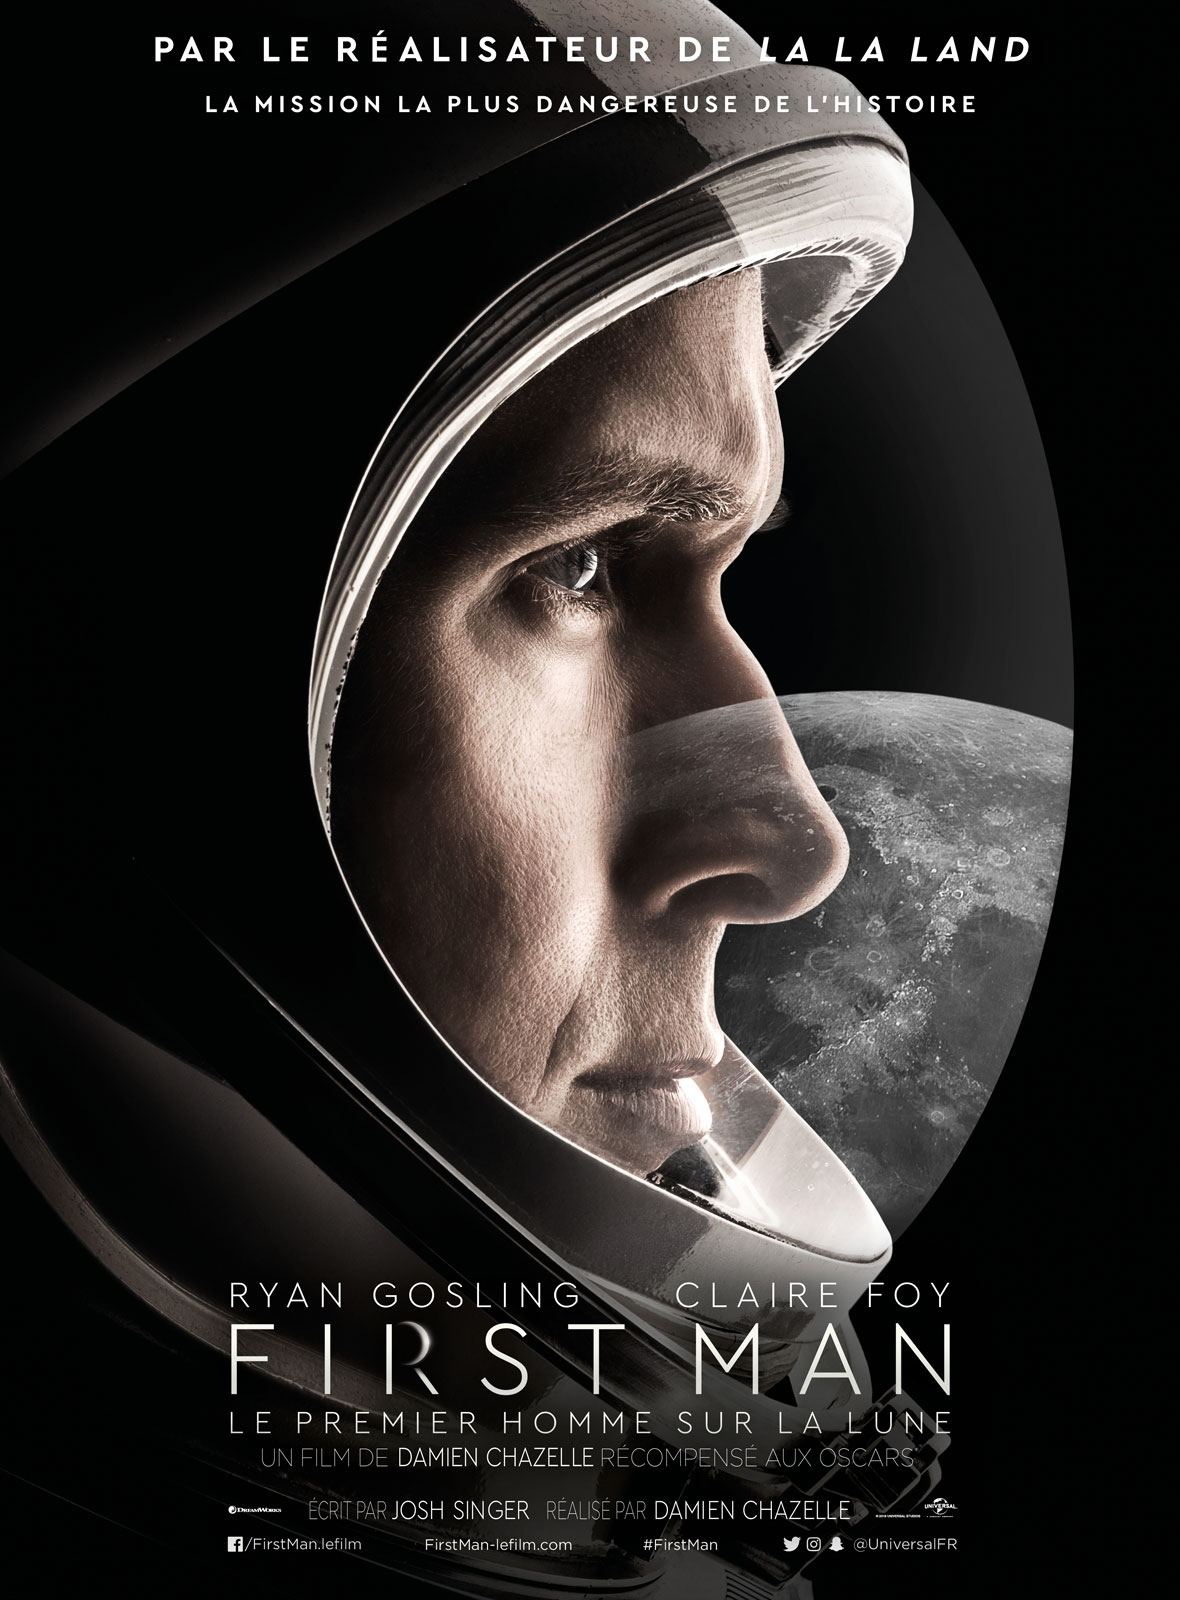 First Man - le premier homme sur la Lune streaming